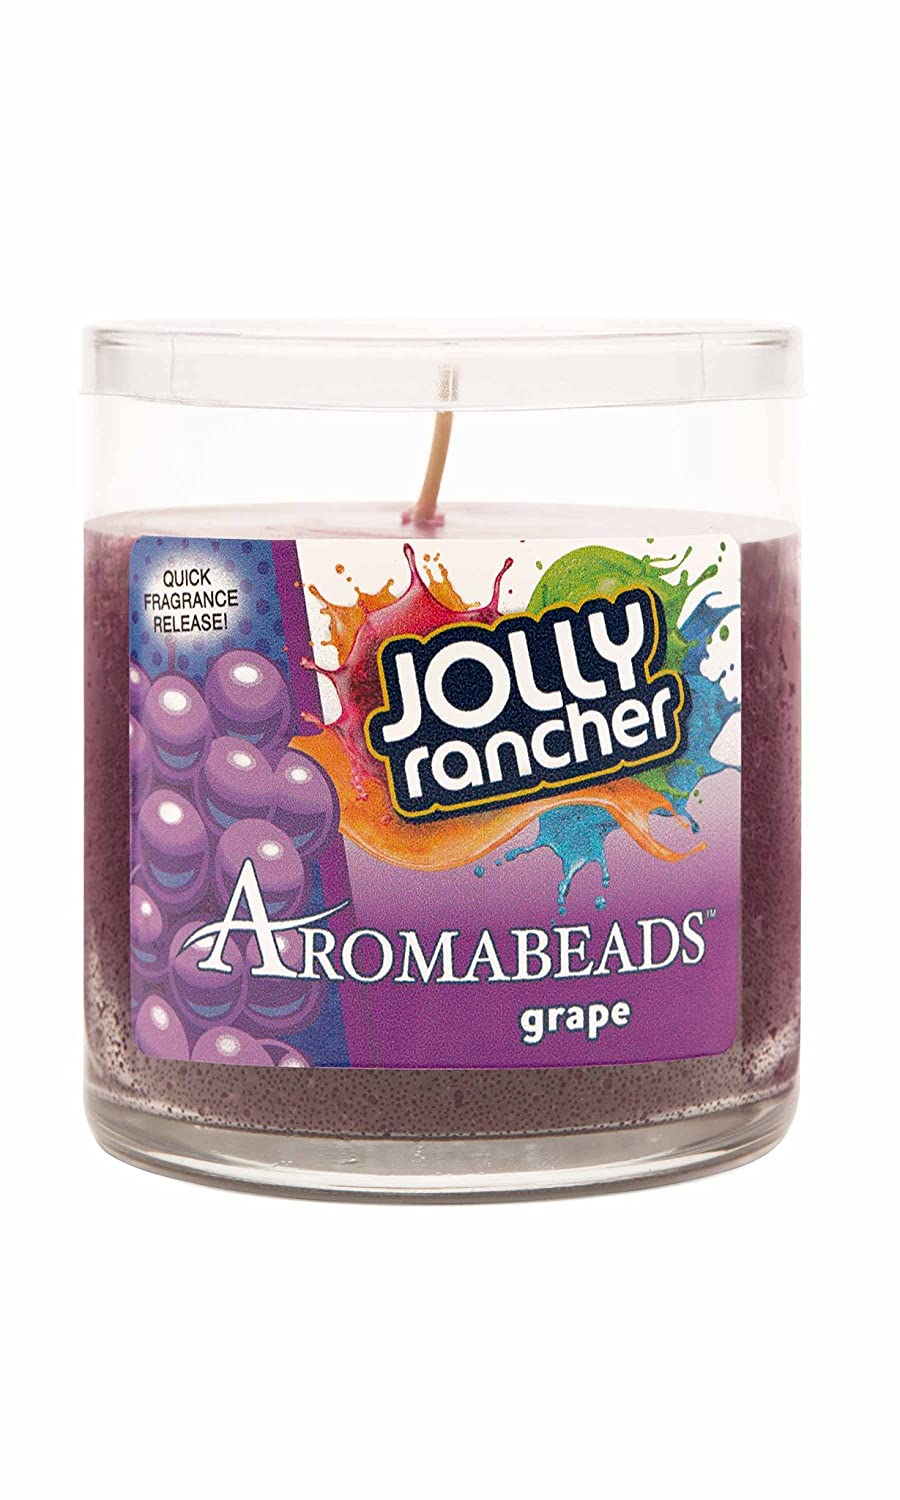 Hanna 's Aromabeads 6oz Hershey 's Candy Scented Candle パープル B01N7IRRF2 Jolly Rancher - Grape